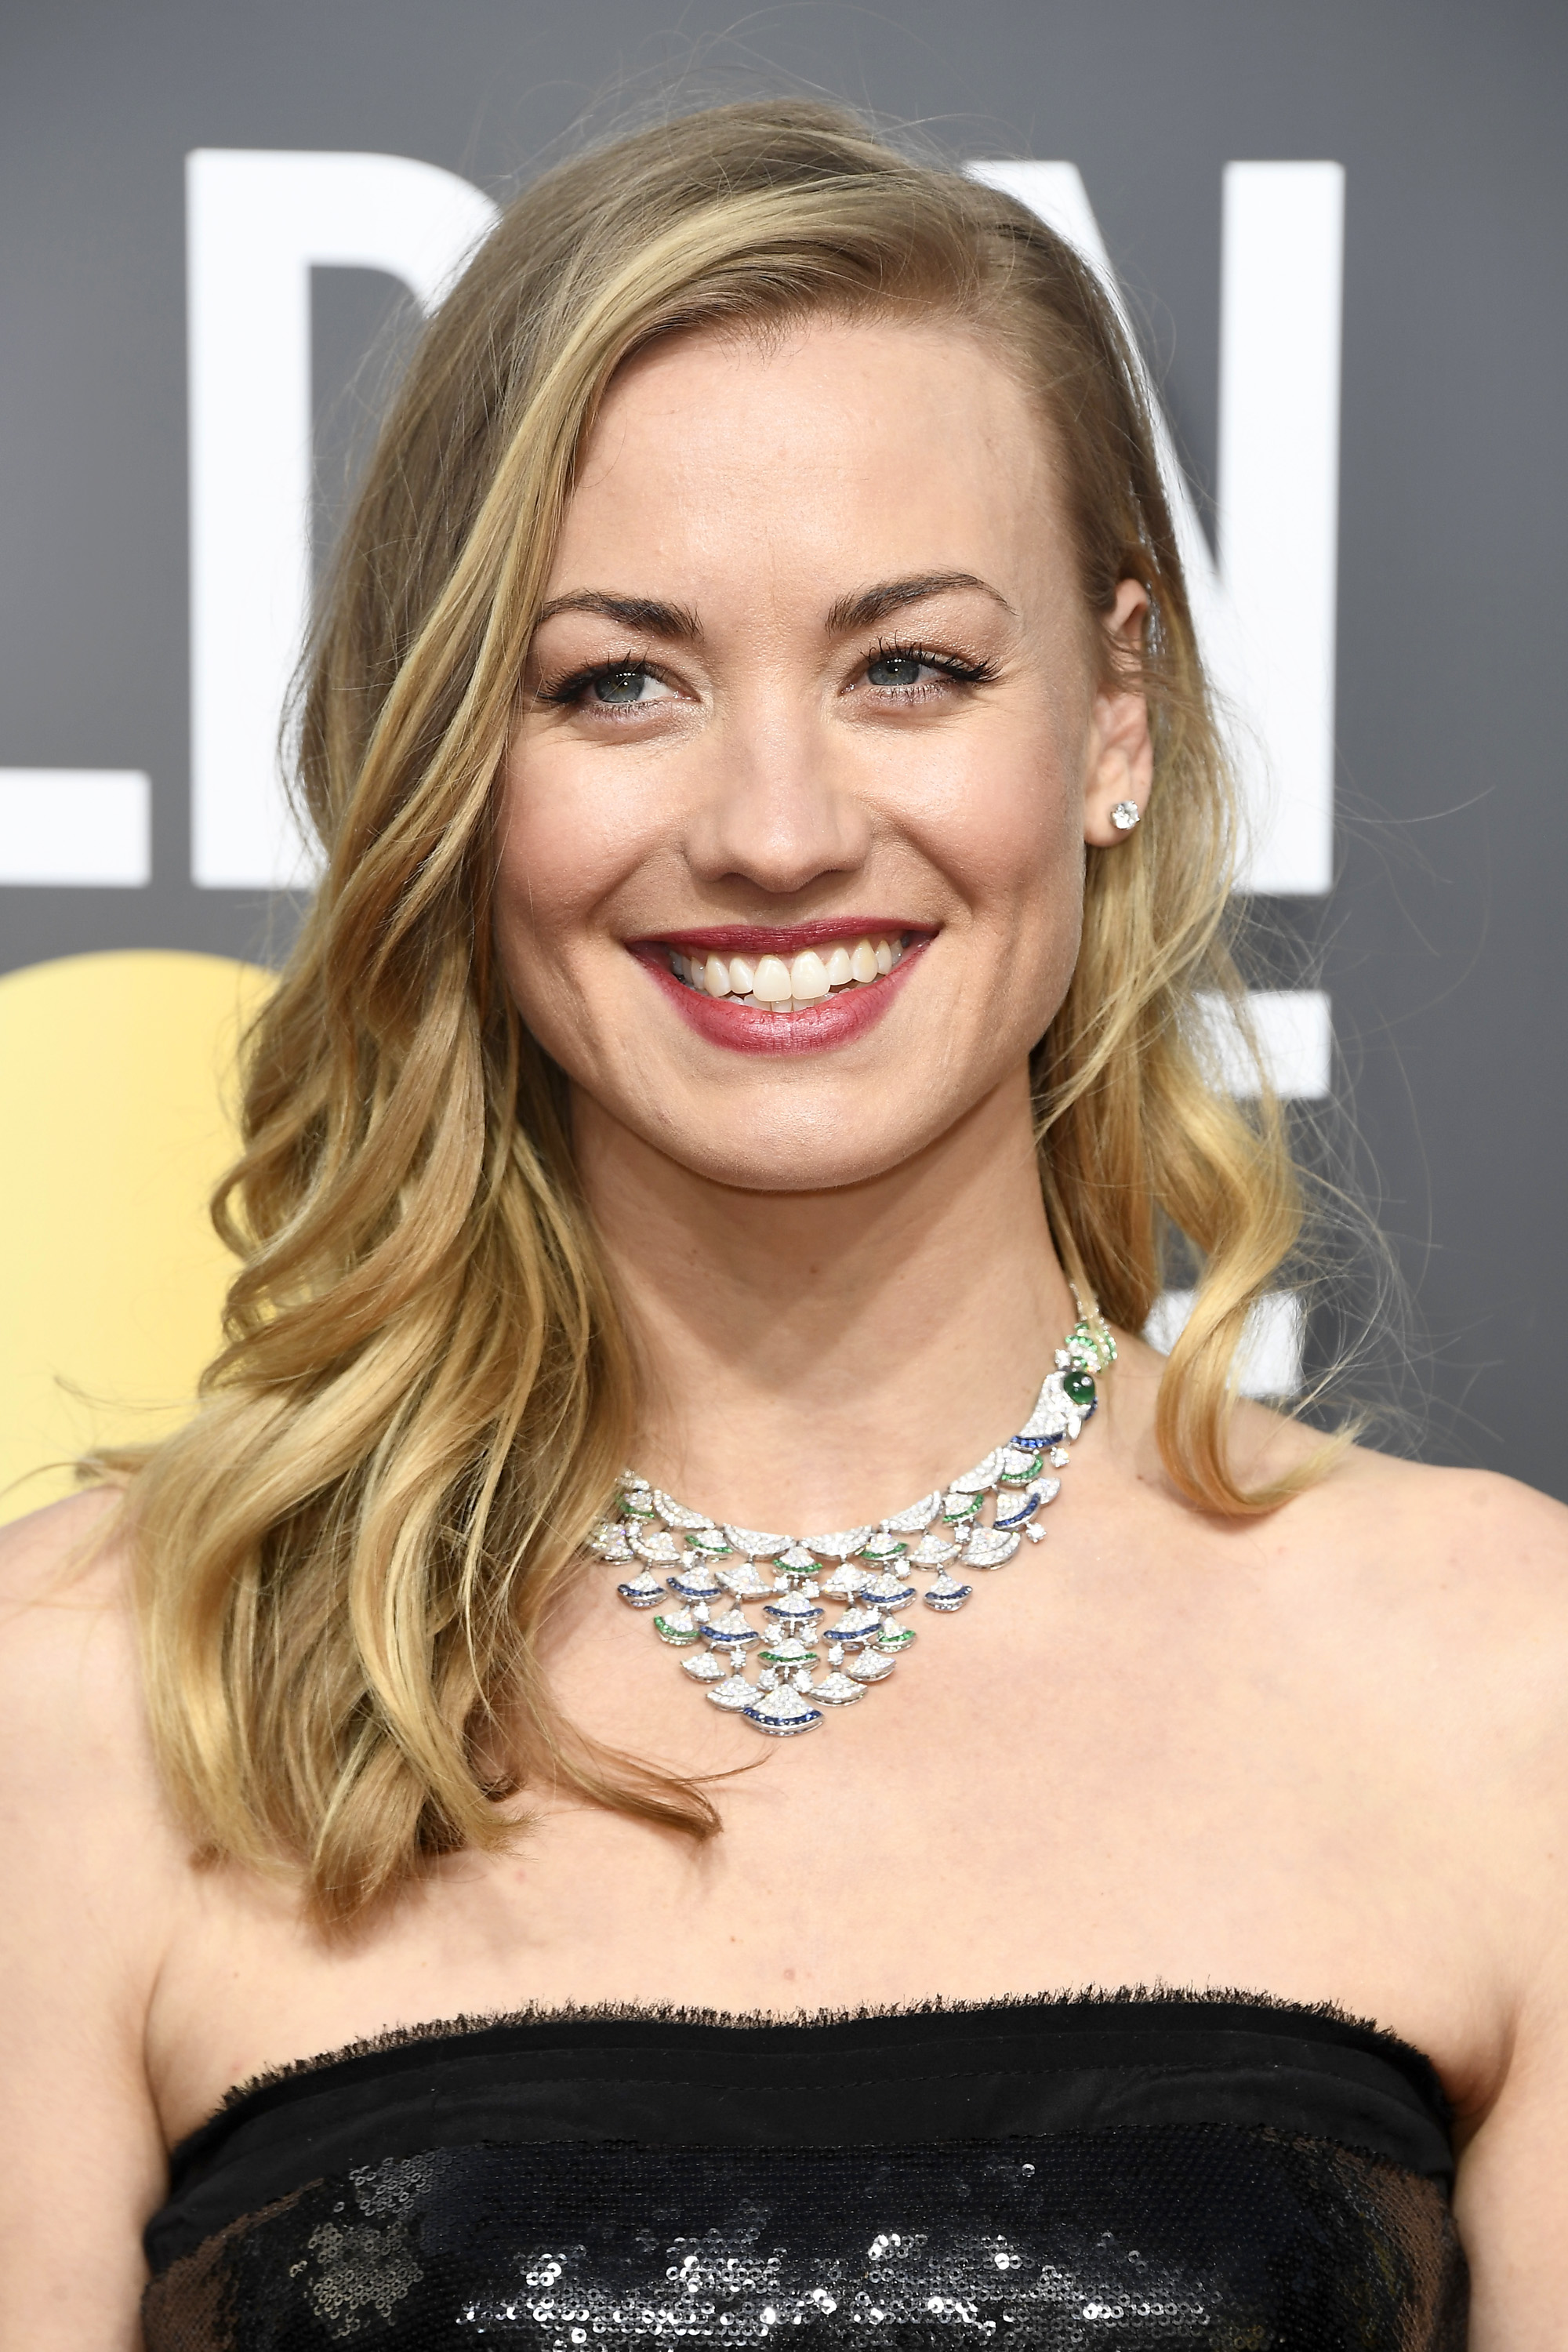 Actor Yvonne Strahovski attends The 75th Annual Golden Globe Awards at The Beverly Hilton Hotel on January 7, 2018 in Beverly Hills, California.